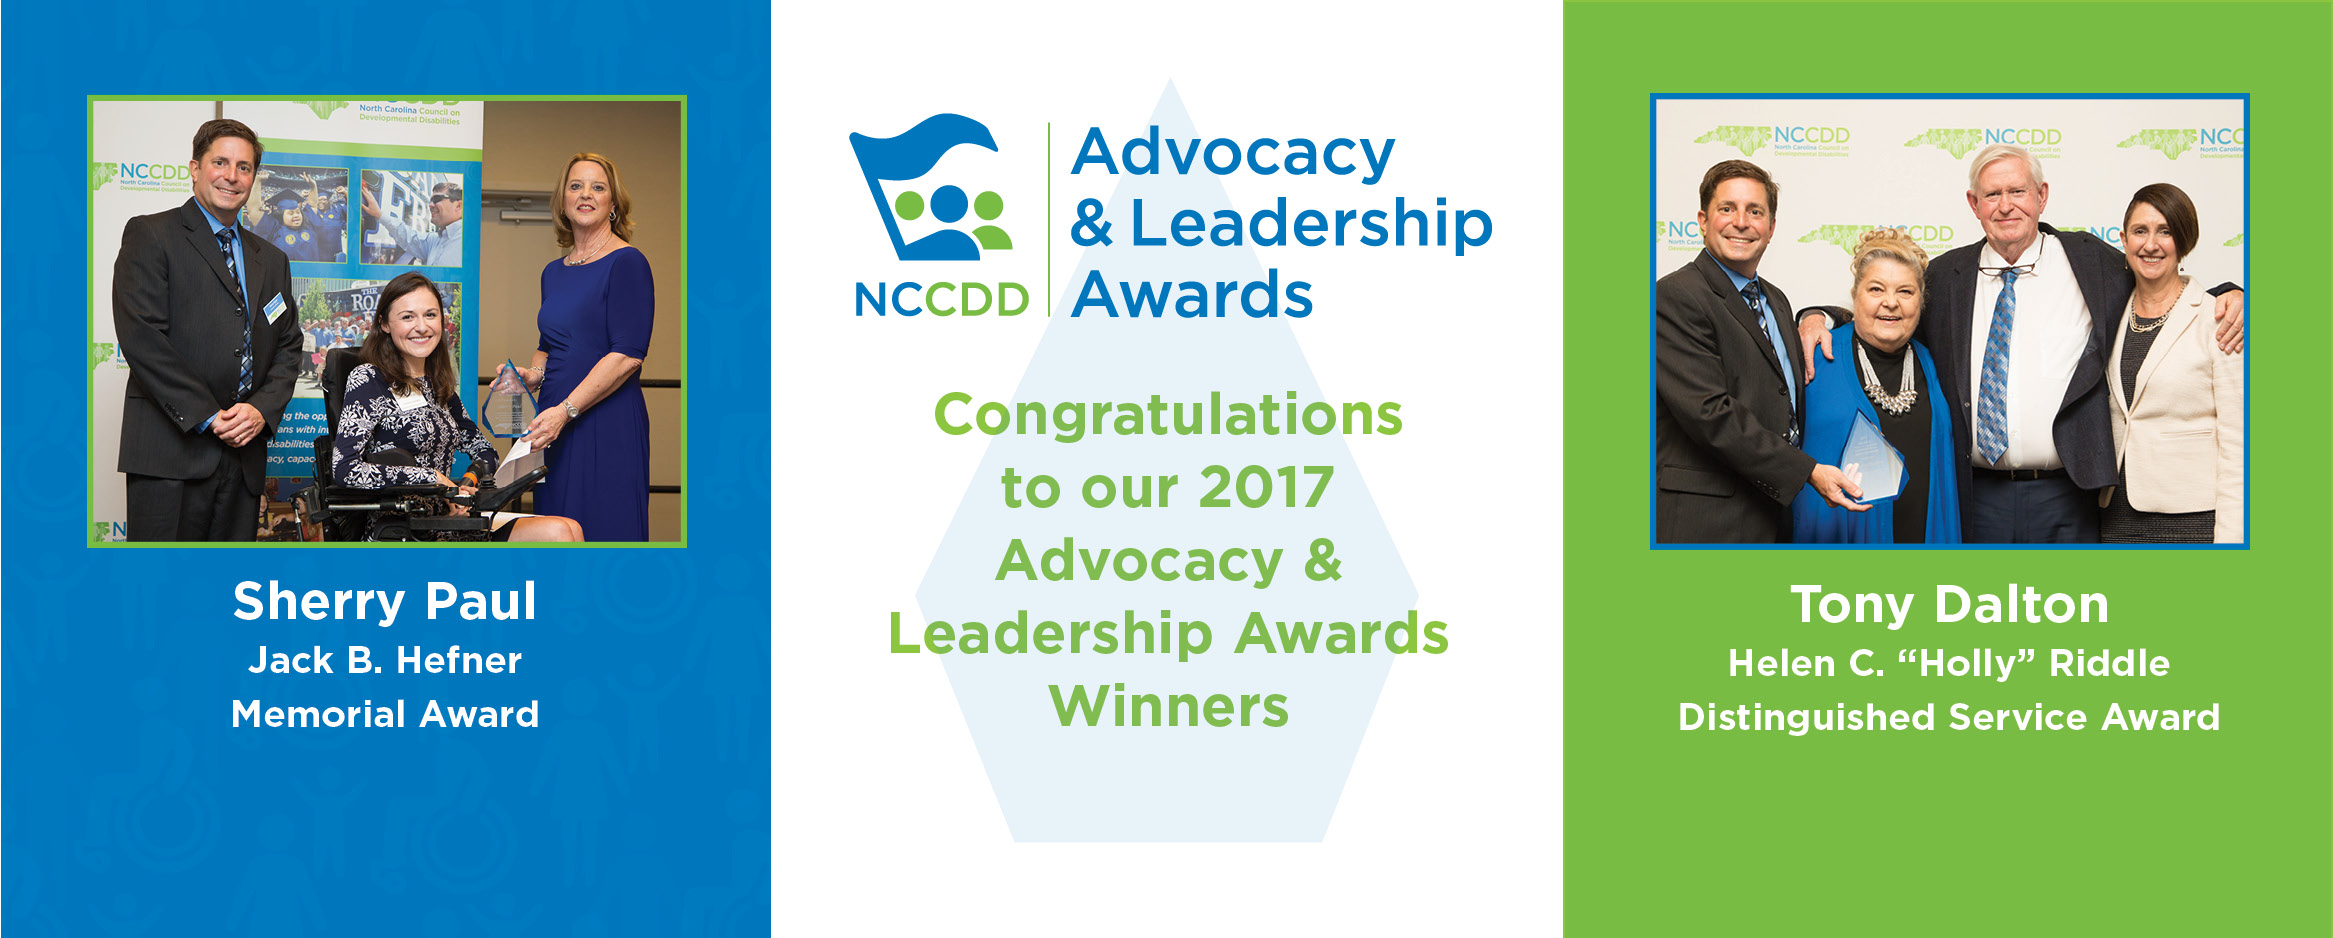 Congratulations to our 2017 Advocacy & Leadership Awards Winners - Sherry Paul and Tony Dalton